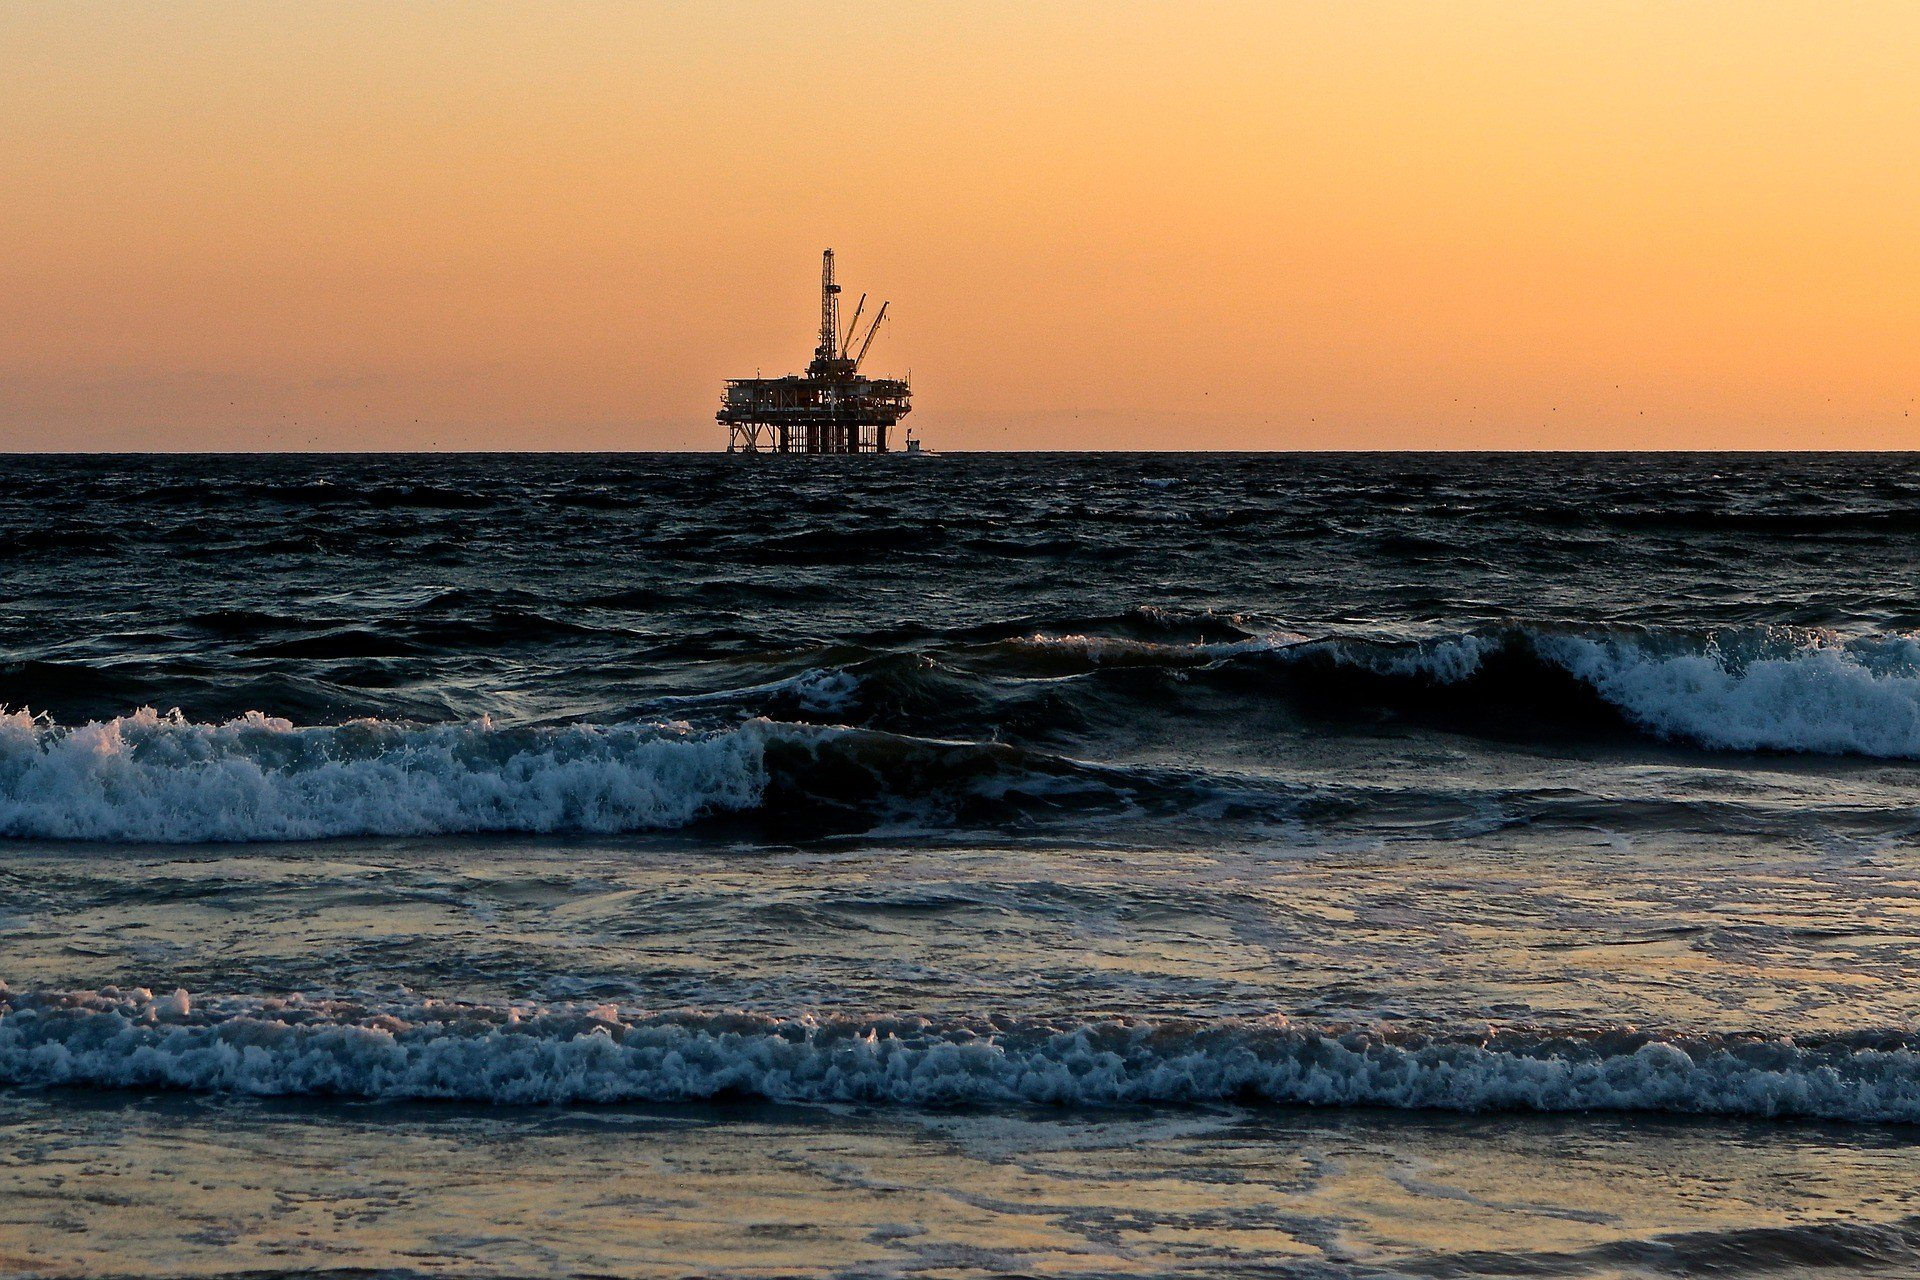 Offshore oil rig (source: catmoz / Pixabay)